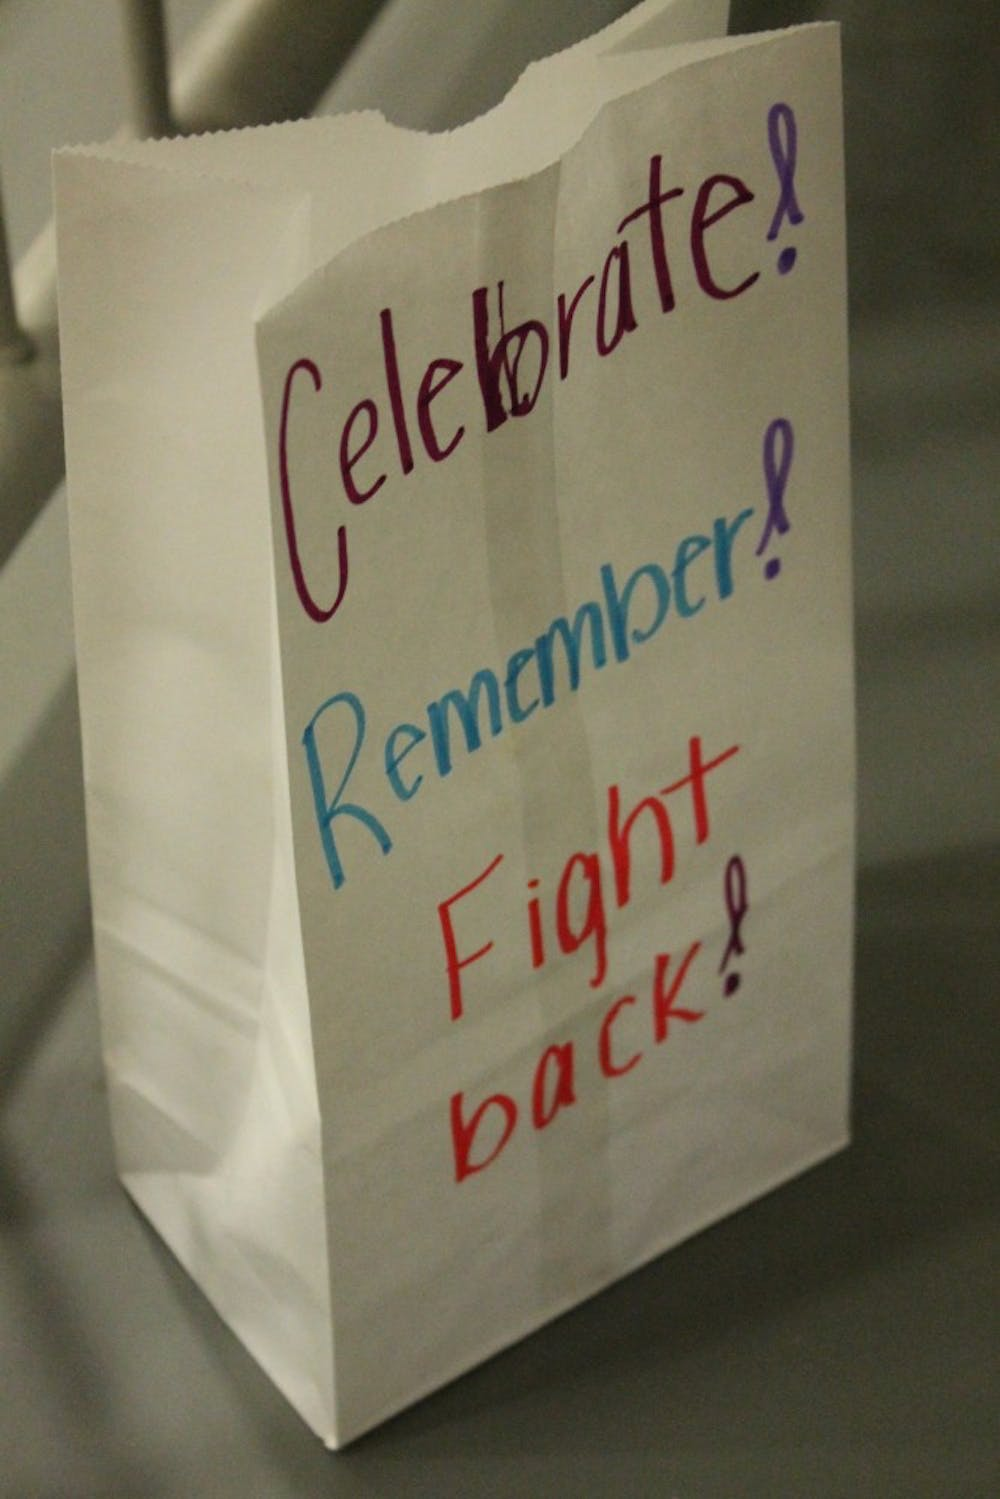 Relay for Life begins Friday, April 4